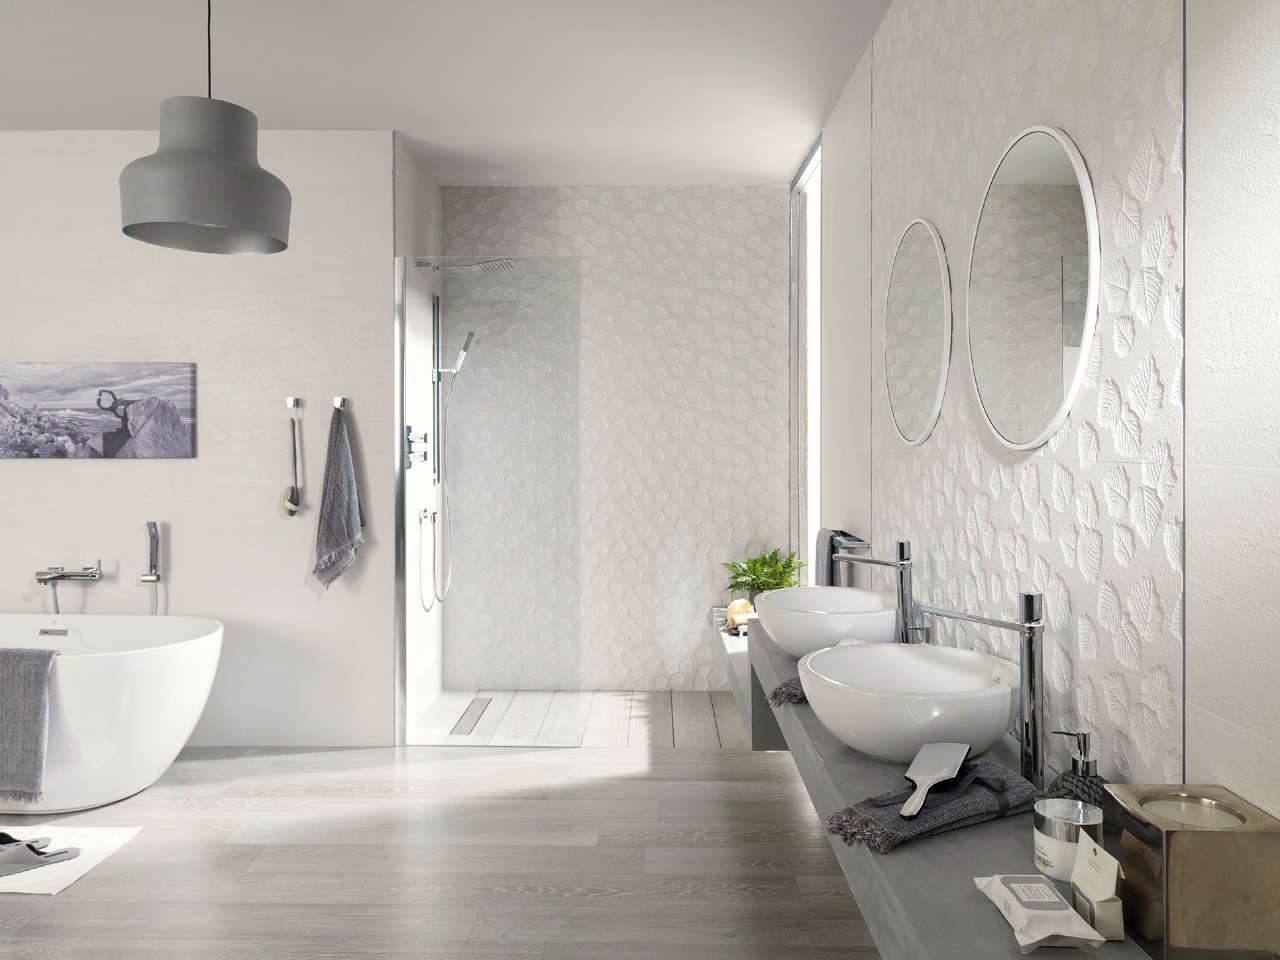 Porcelanosa Manila Blanco Cm Wall Tiles Love The Textured